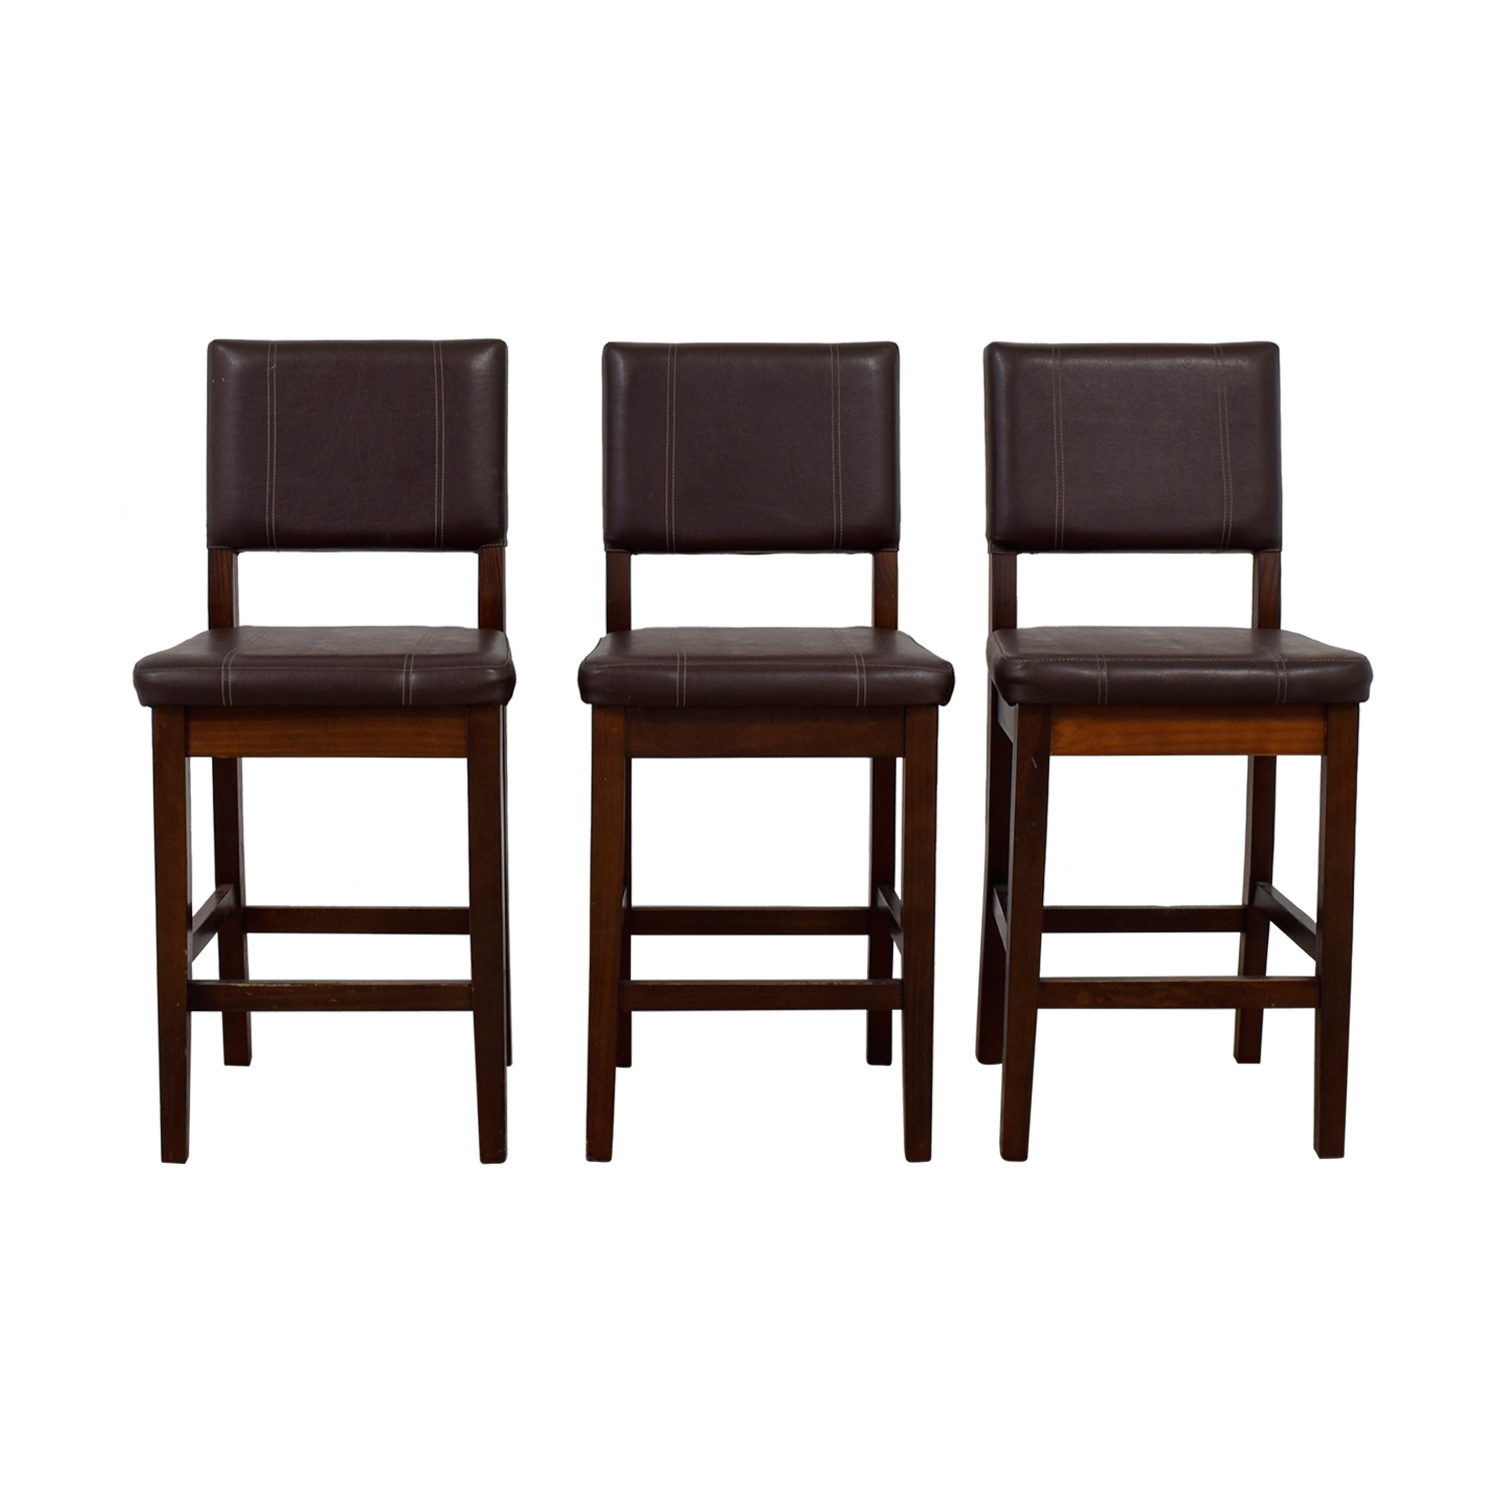 Pier 1 Imports Pier 1 Imports Brown Leather Stools used